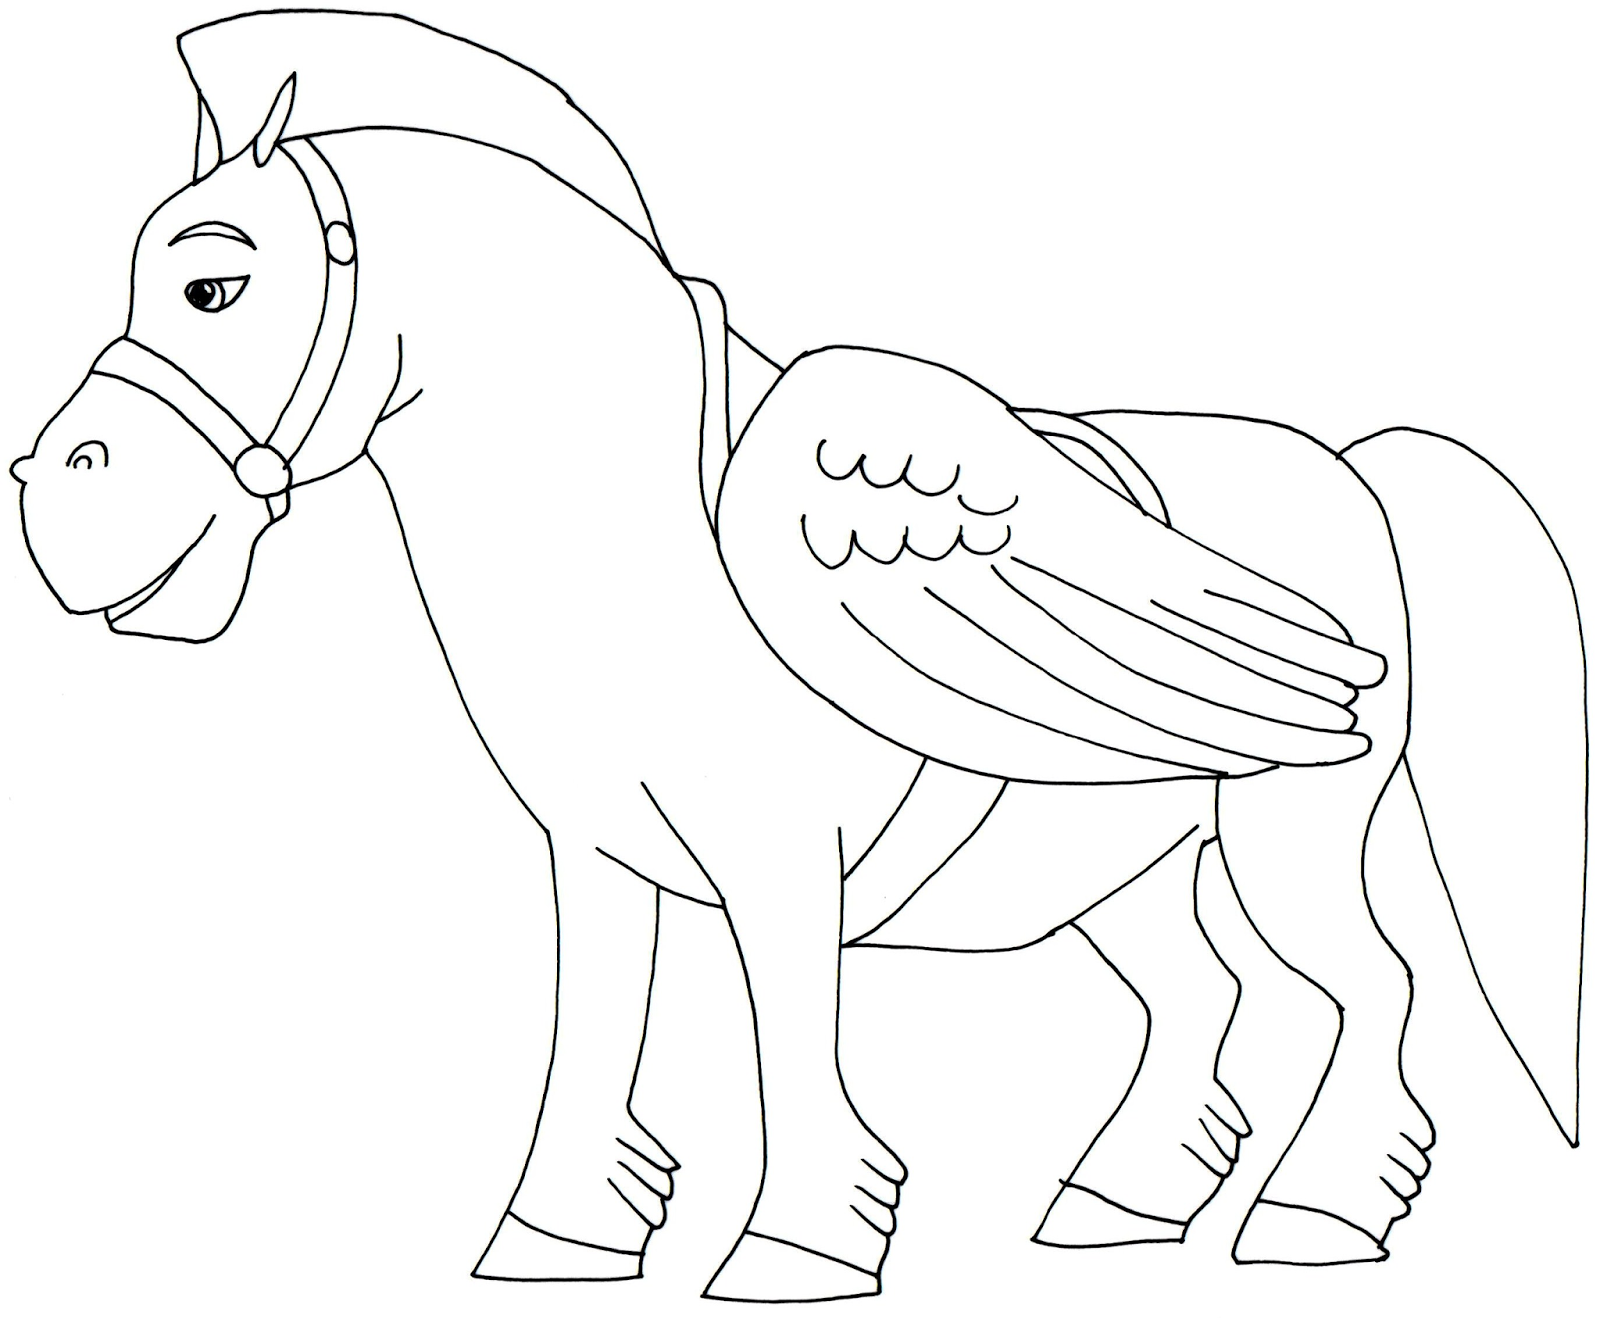 Sofia the first coloring pages minimus sofia the first for Sofia printable coloring pages